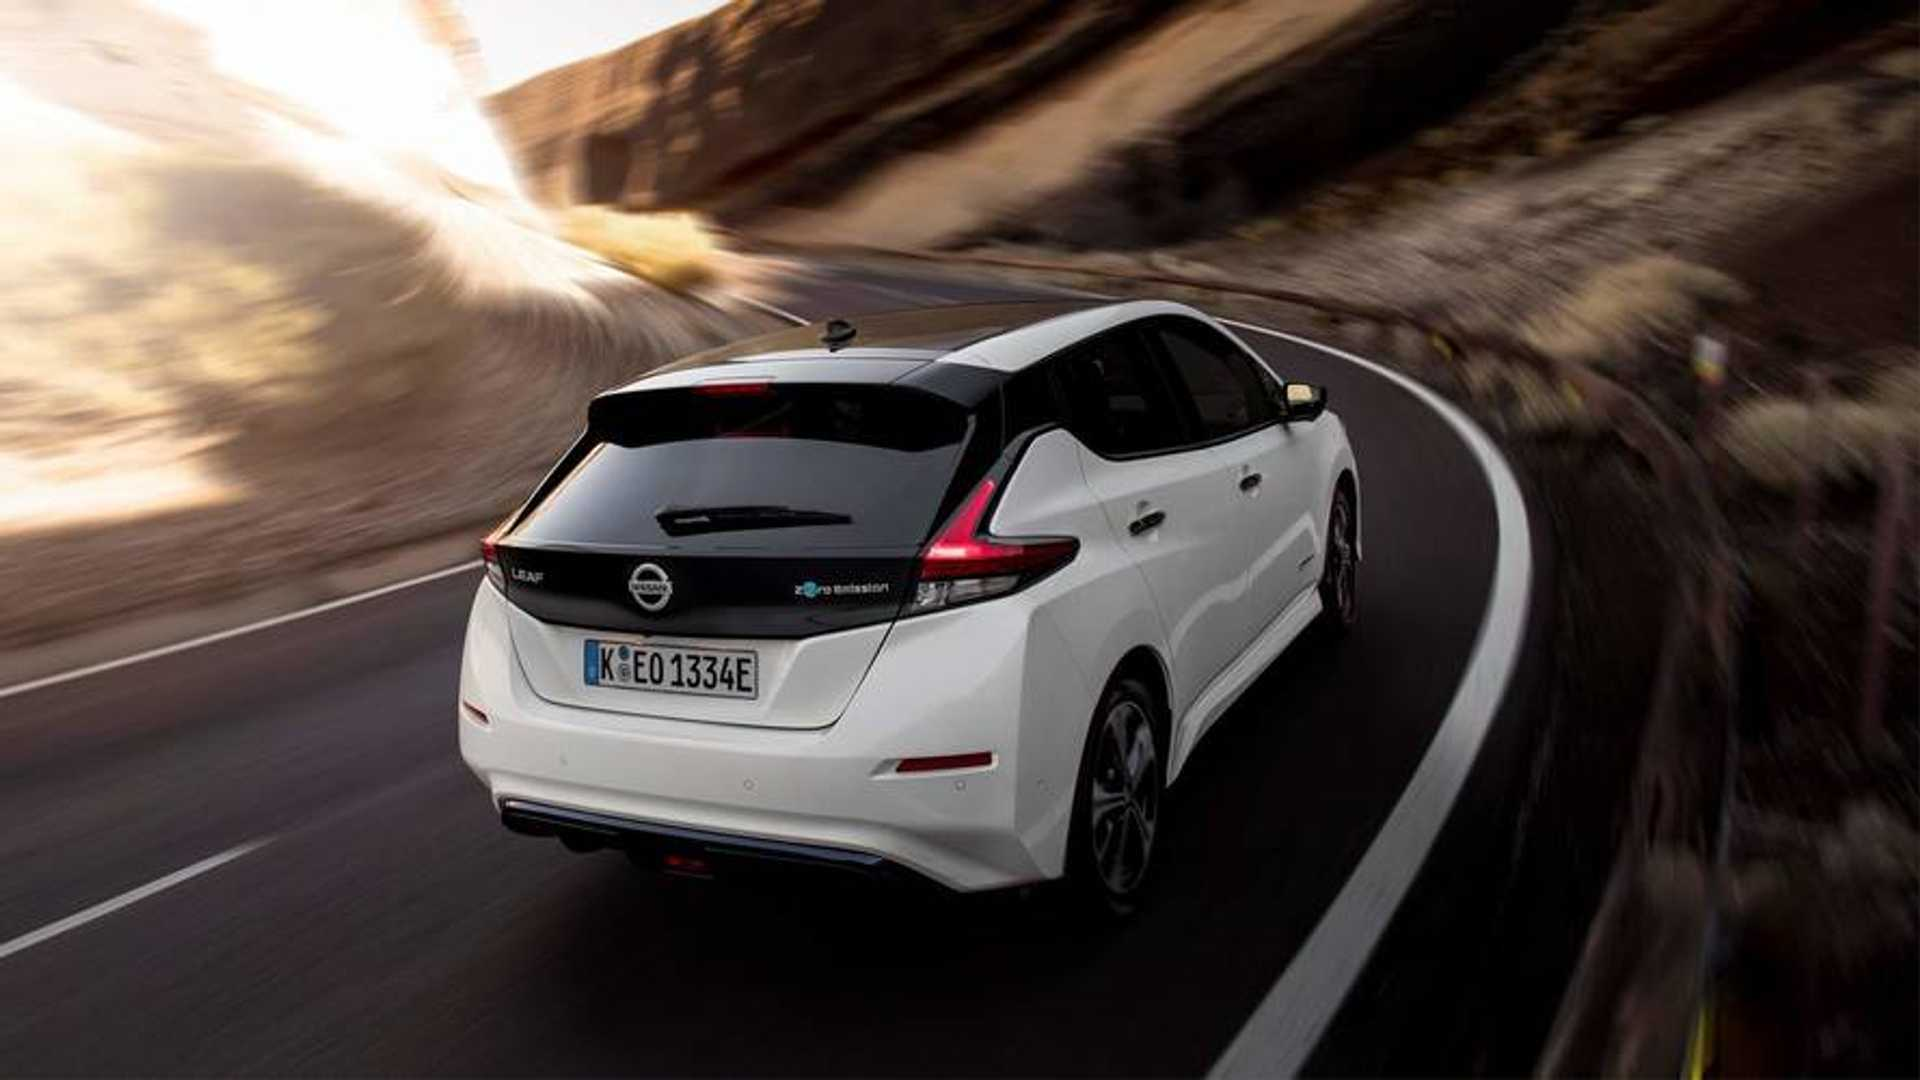 Driven 2018 Nissan Leaf This Car Has It All